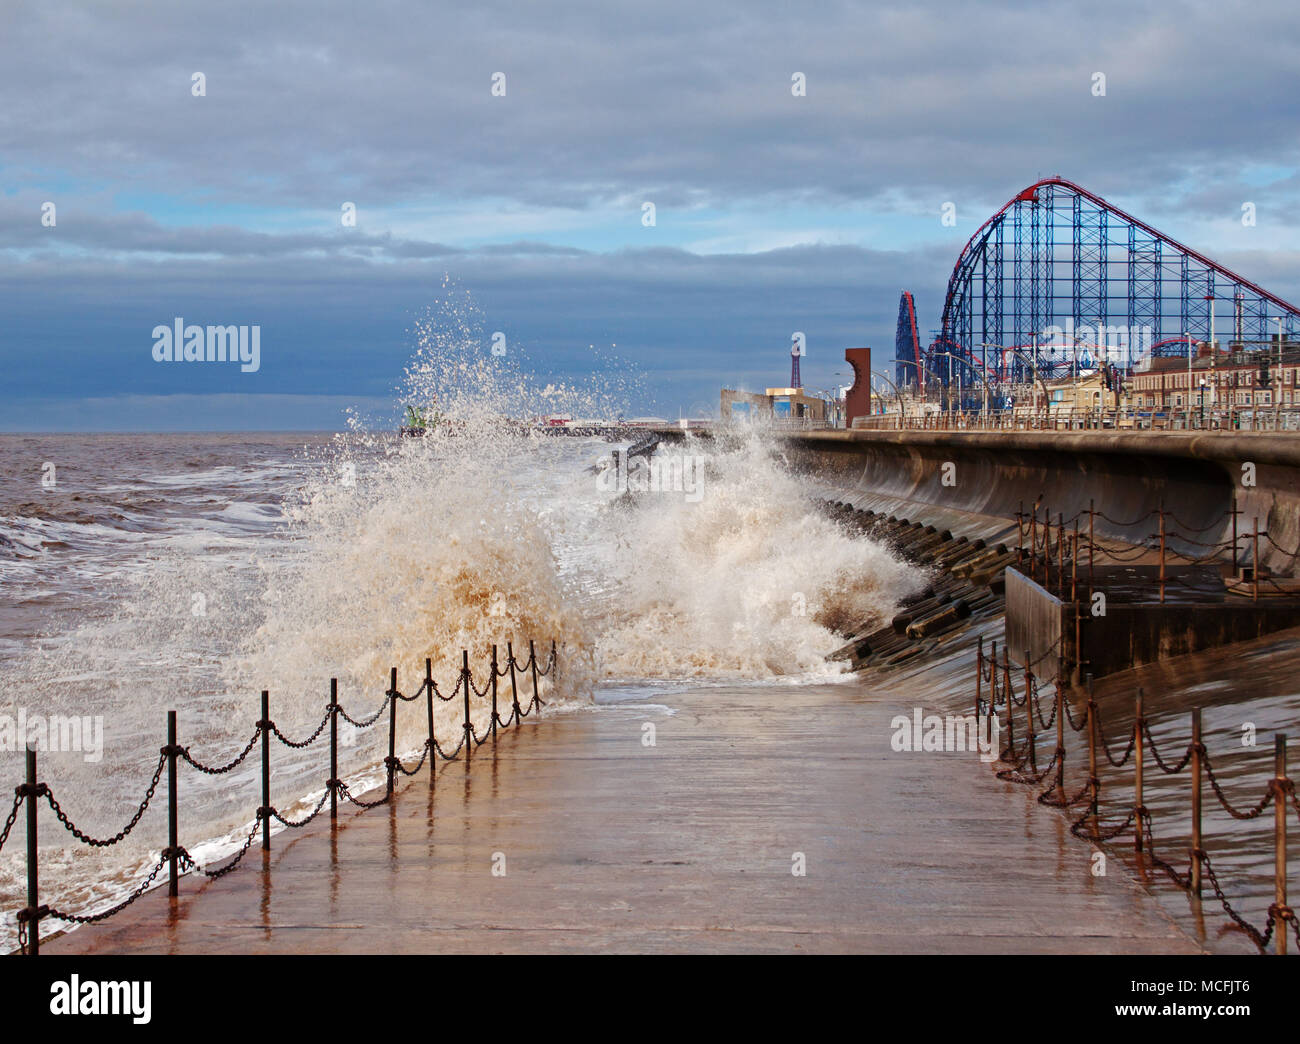 Waves splashing against Blackpool's sea defence, making a picturesque scene,  with the big one, Blackpool Pleasure Beach, in the background Stock Photo